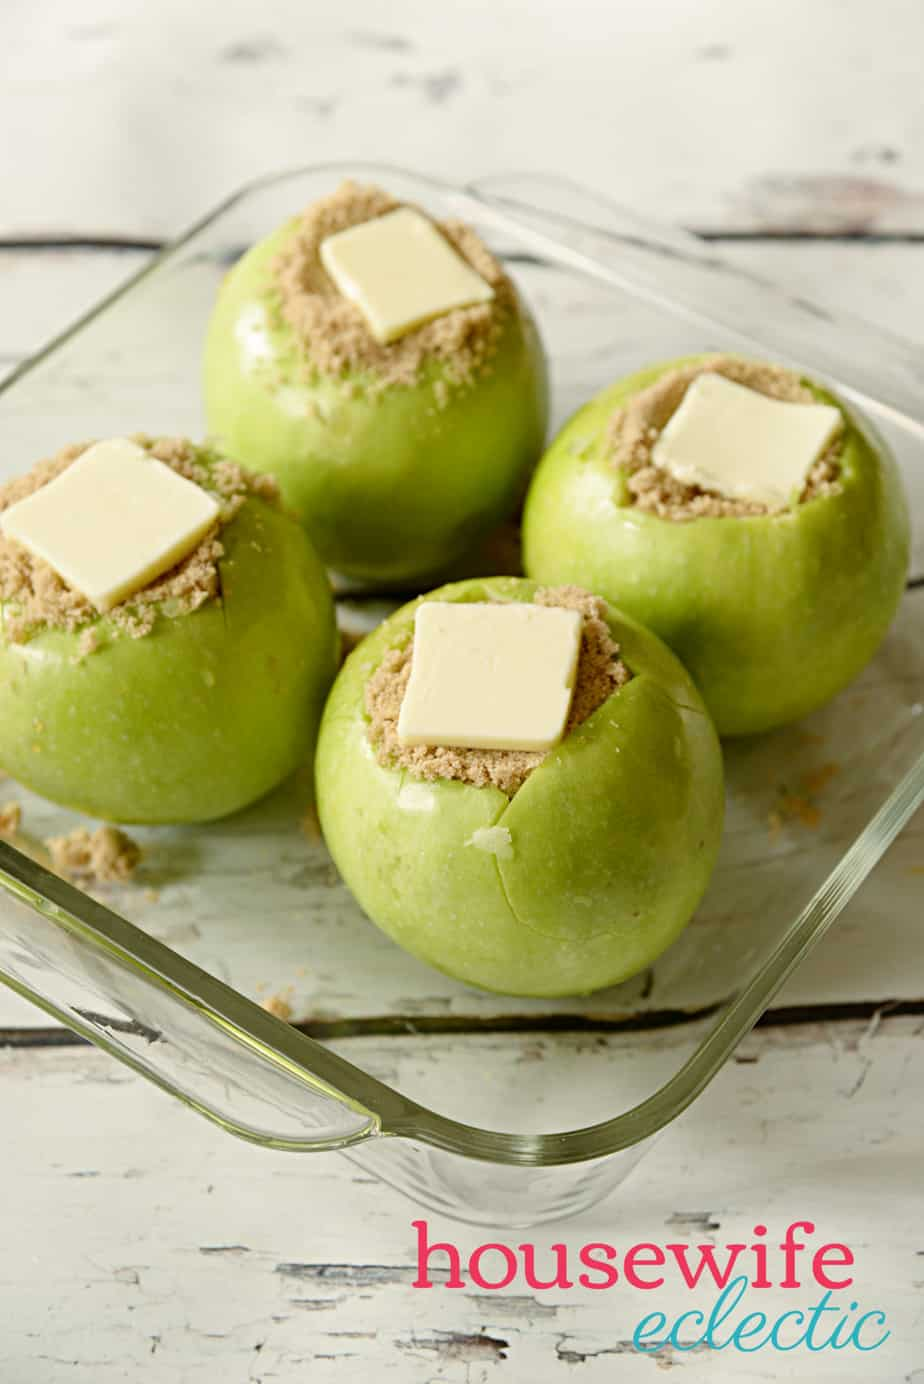 Brown Sugar Stuffed Baked Apples: Apples topped with butter